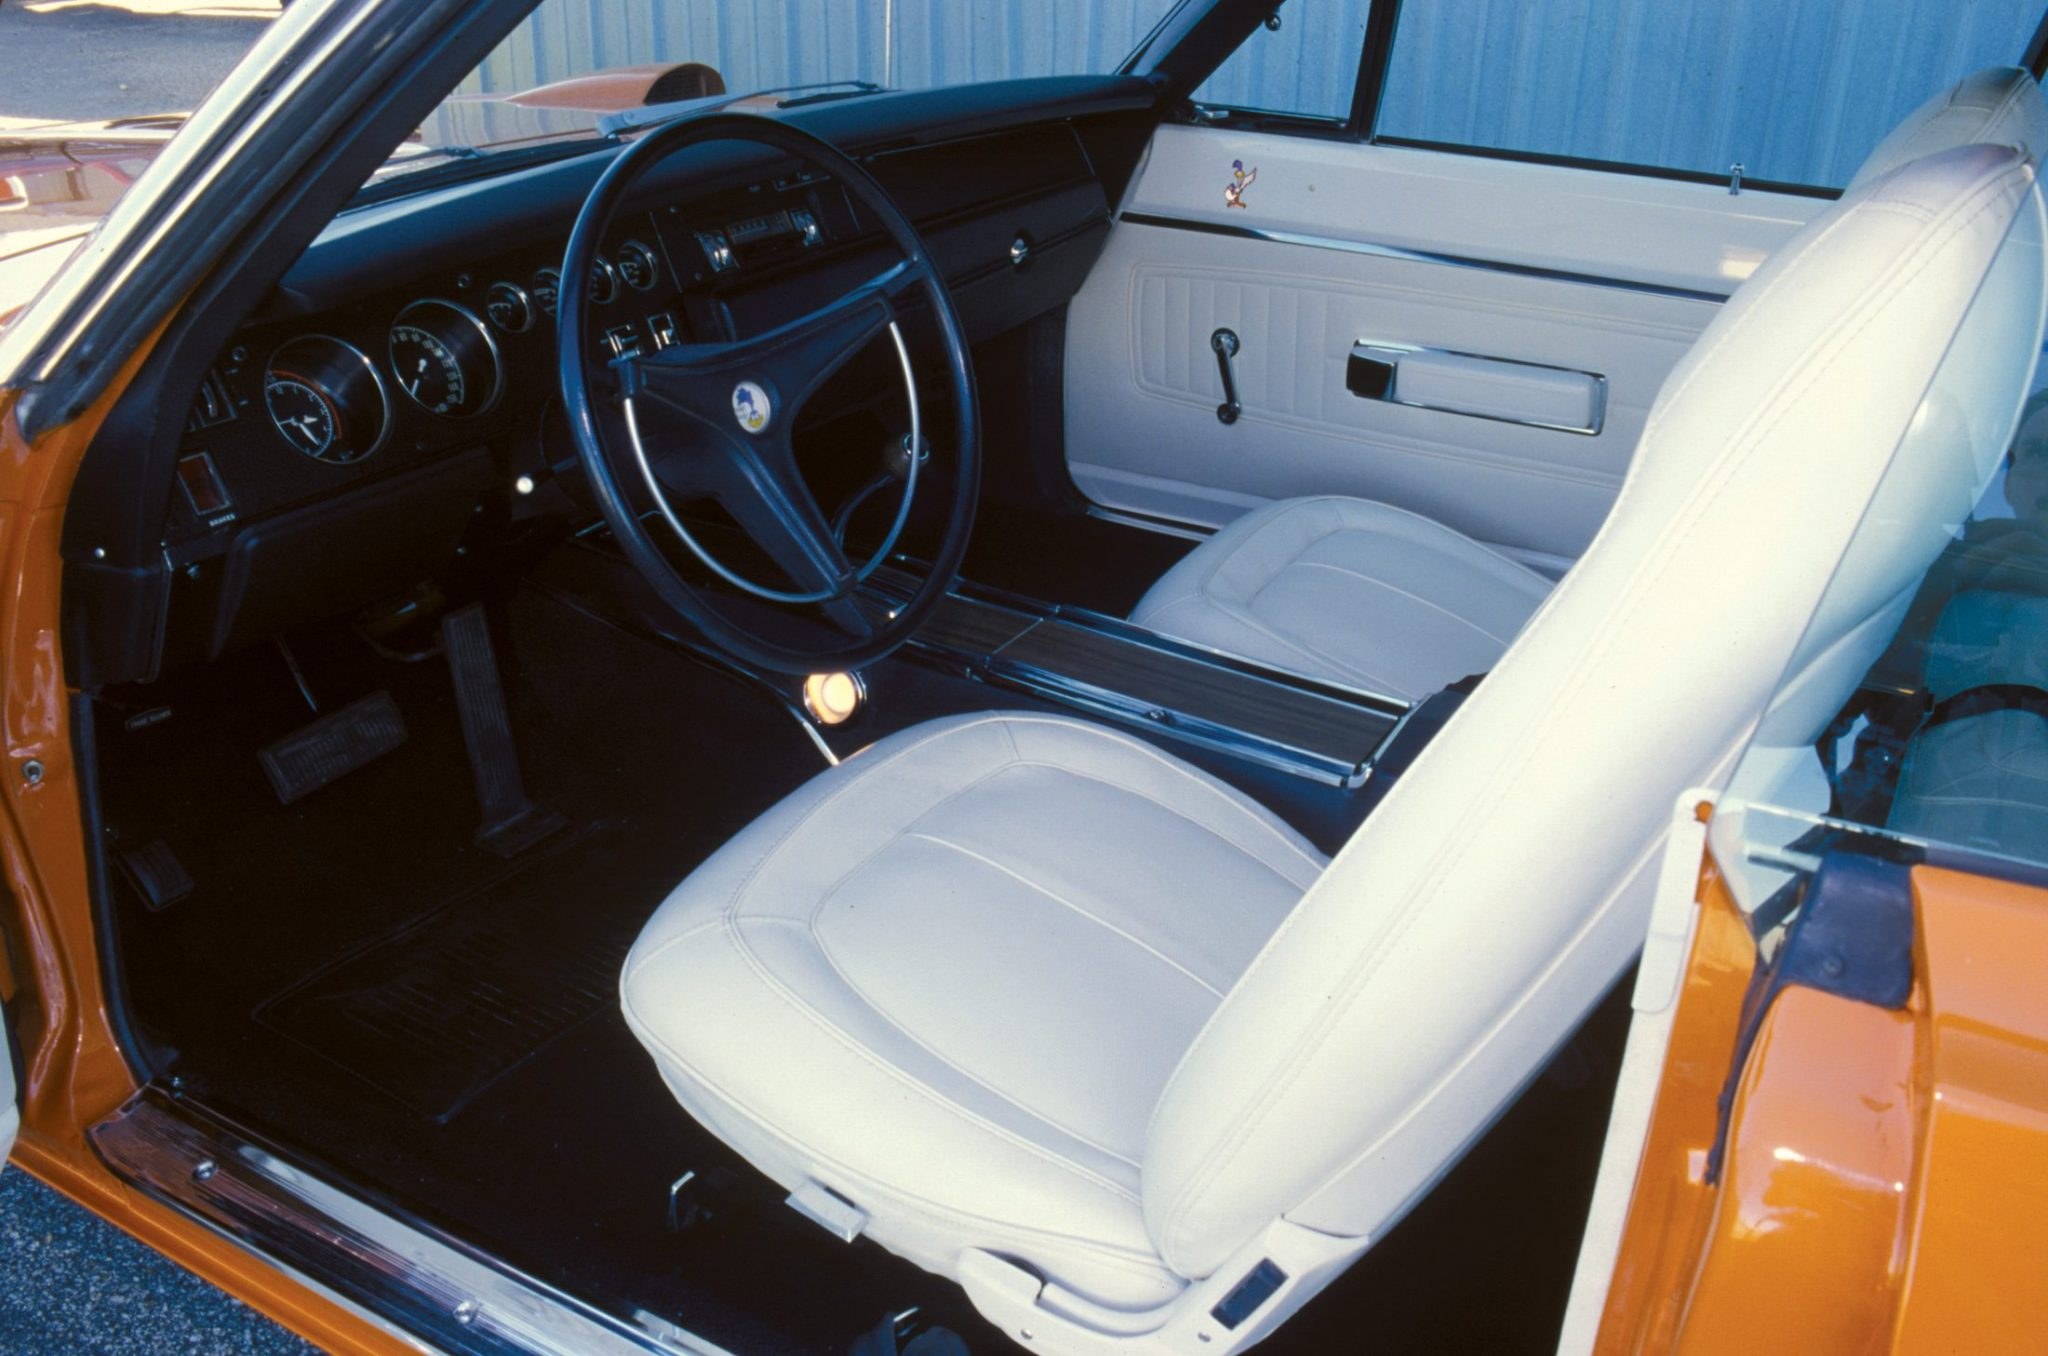 The white interior of this ultra-low mileage Superbird is perfectly preserved.